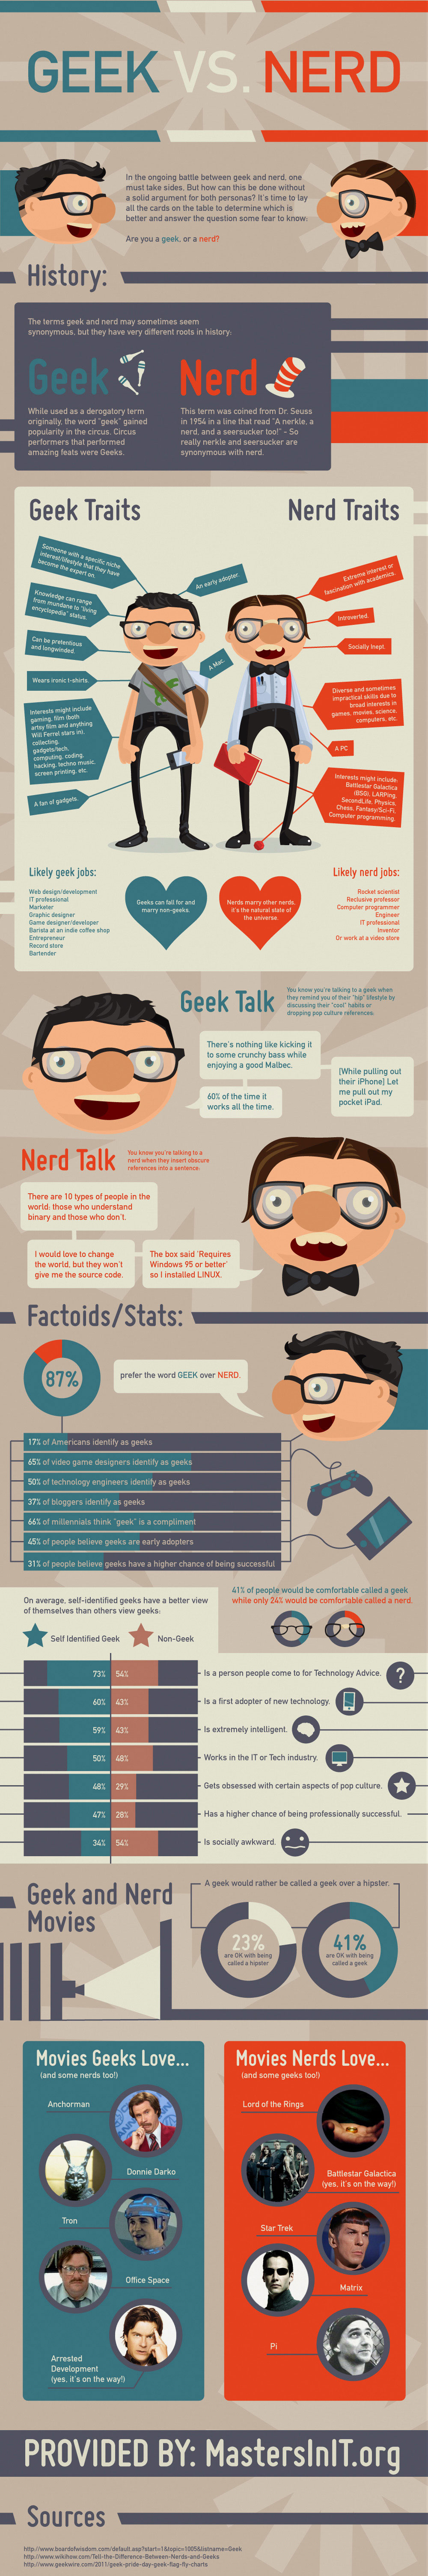 nerd vs geeks The Ultimate Showdown: Geeks vs. Nerds [INFOGRAPHIC]